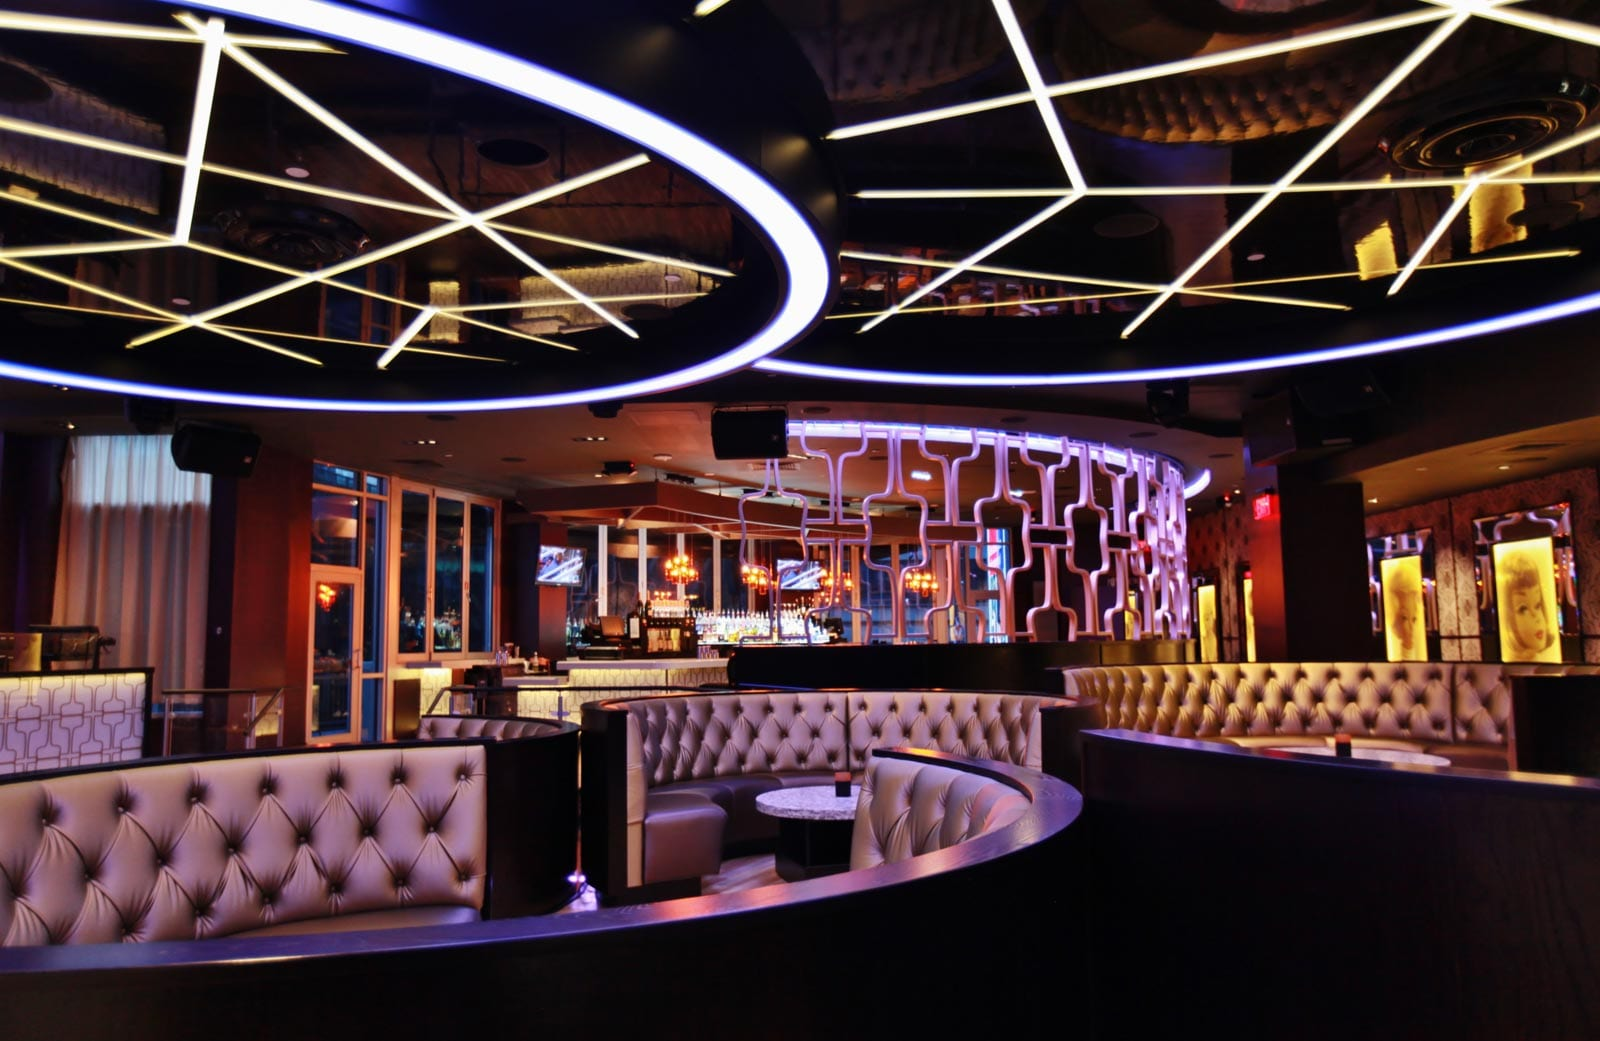 Bubble Hotel Restaurant Nightclub Design By Big Time